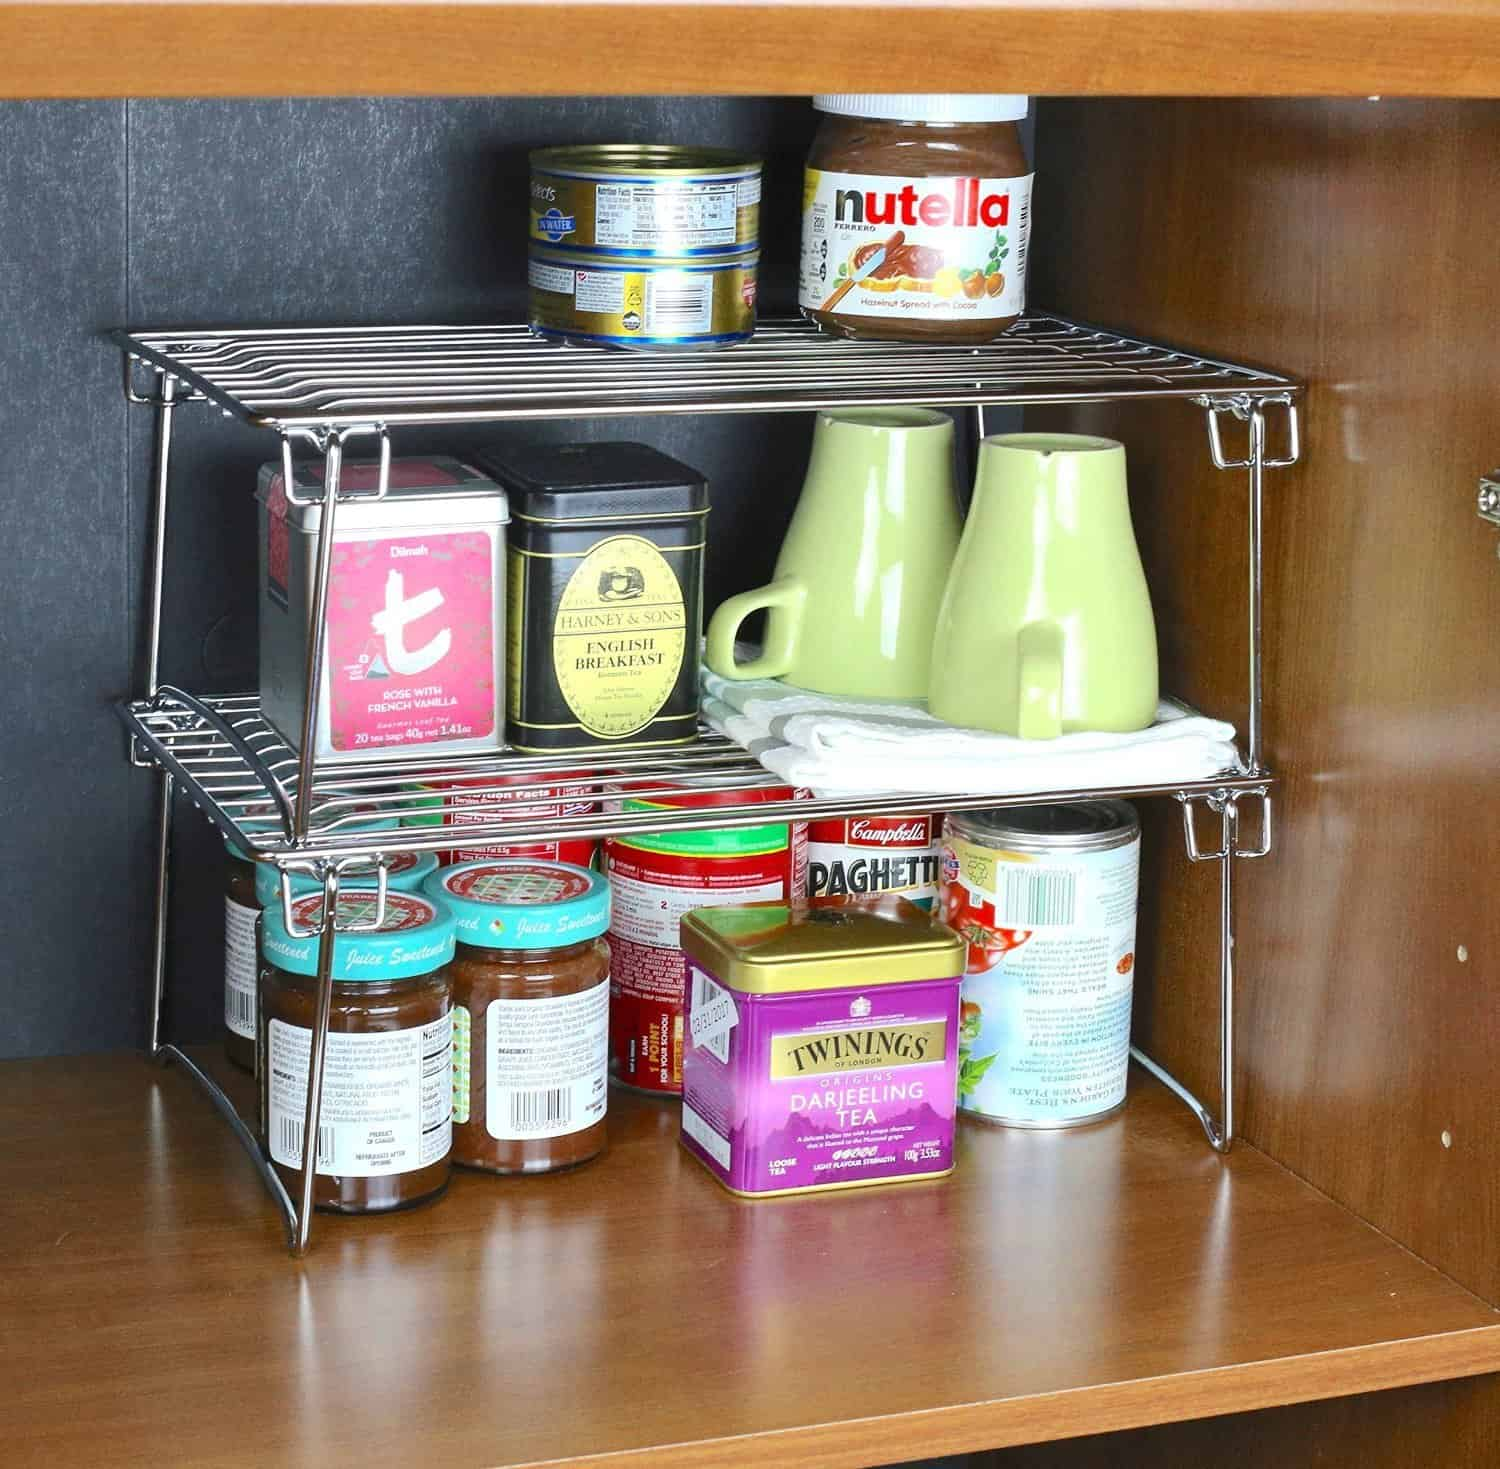 10 Kitchen Cabinet Tips: 15 Mind-Blowing Kitchen Cabinet Organization Ideas You'll